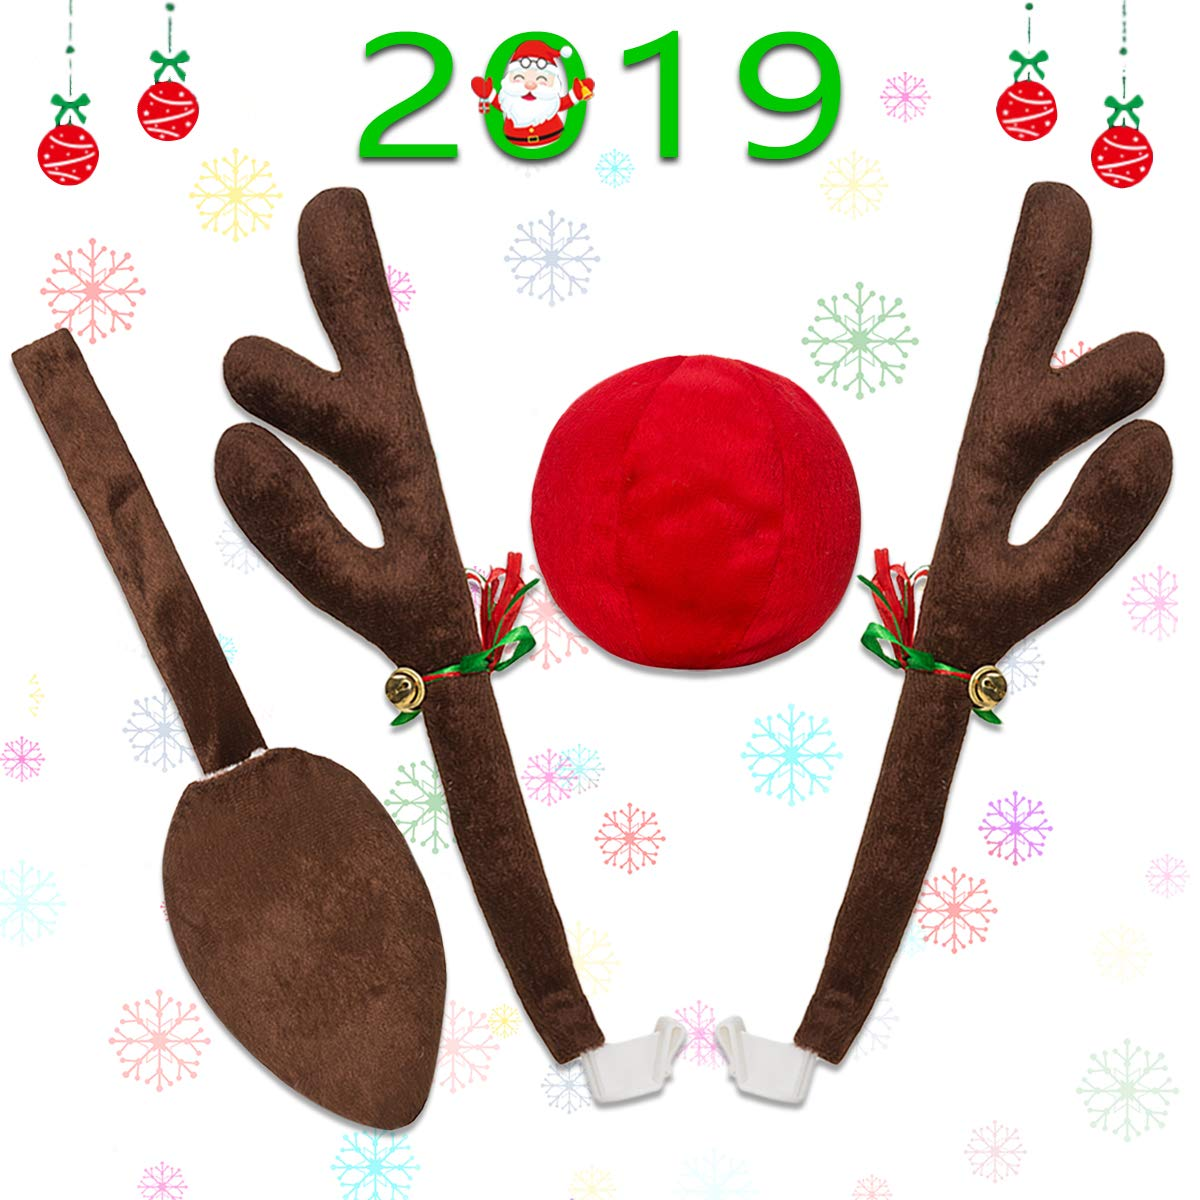 Minetom Car Reindeer Antlers Christmas Reindeer Vehicle Christmas Decorations Auto Decoration Kit with Tail and Jingle Bells Reindeer for Car Christmas Mineton